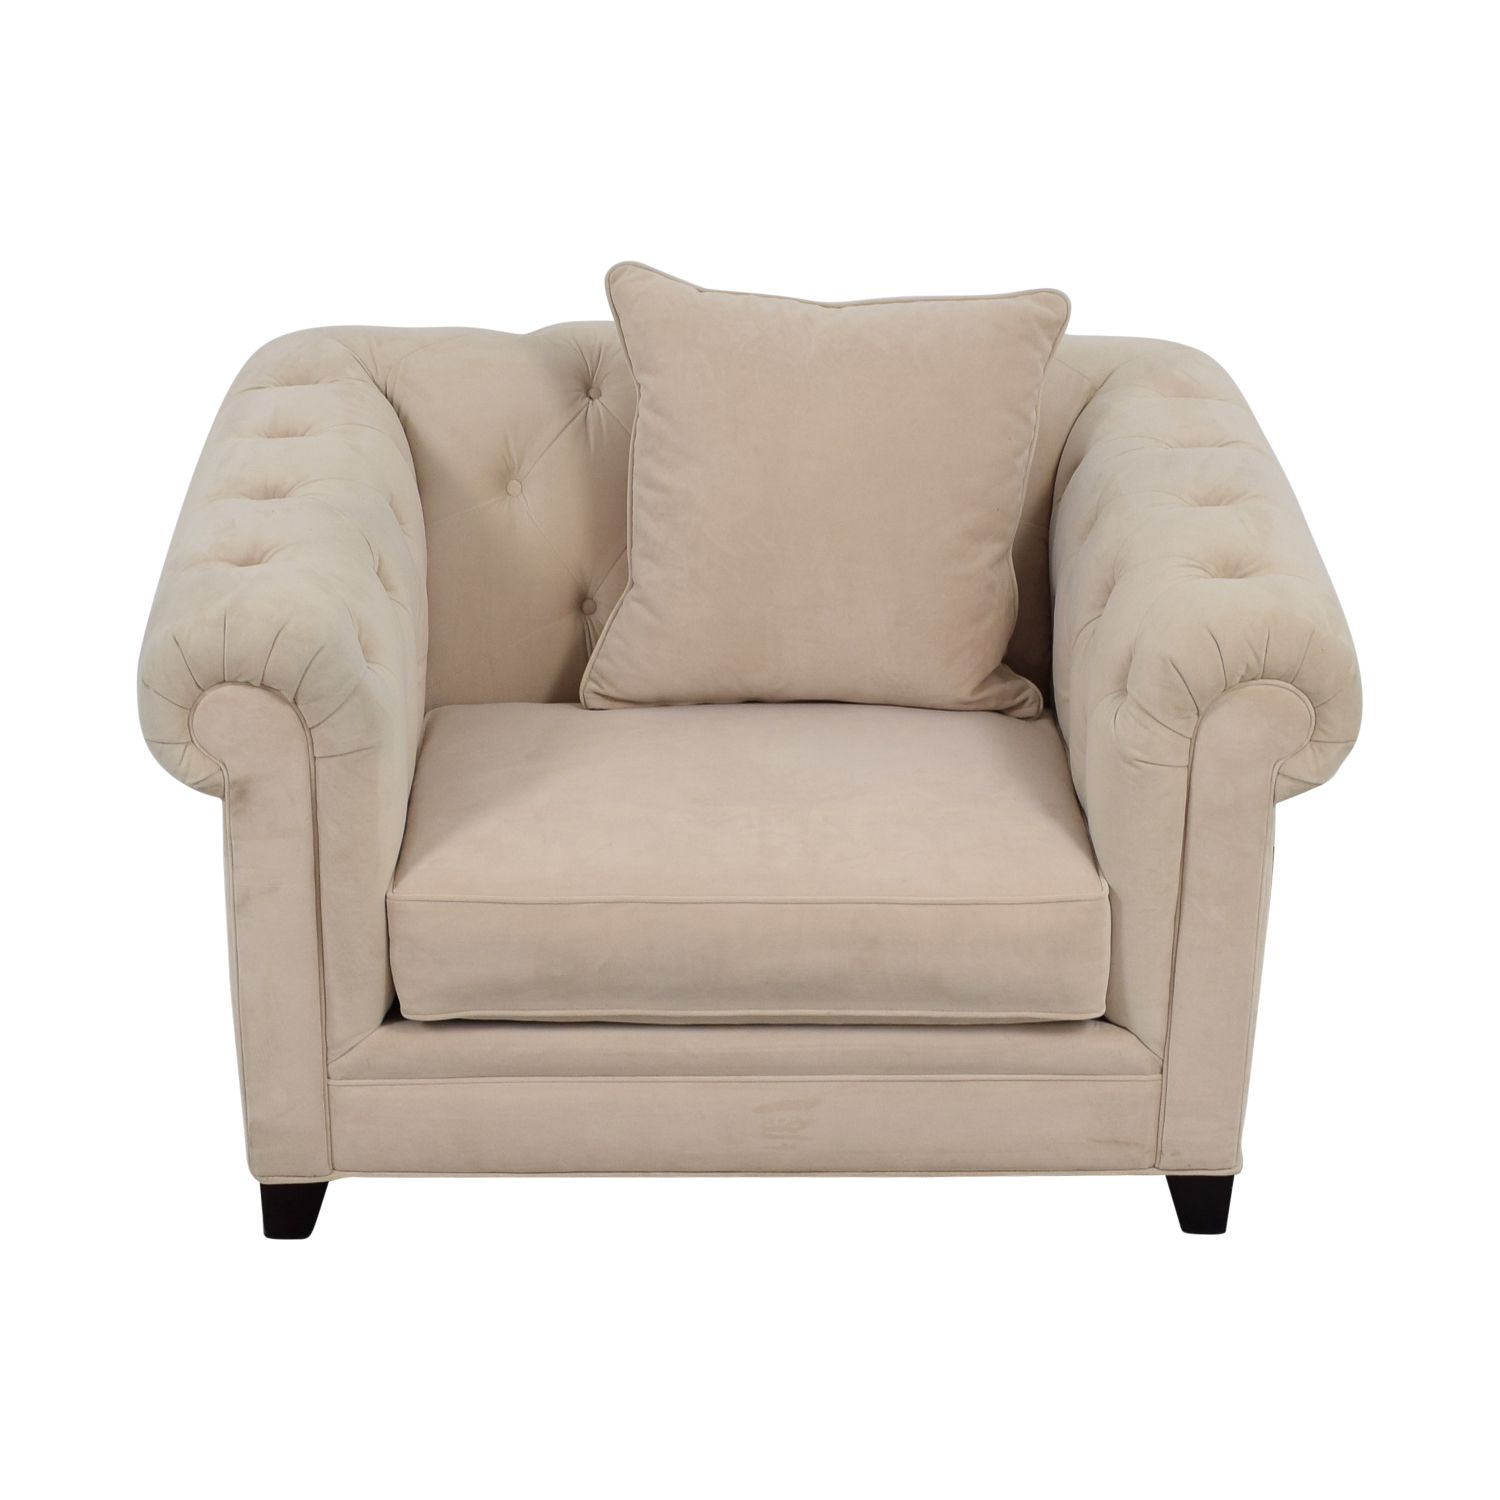 ... Martha Stewart Home Martha Stewart Home Saybridge Beige Arm Chair  Coupon ...